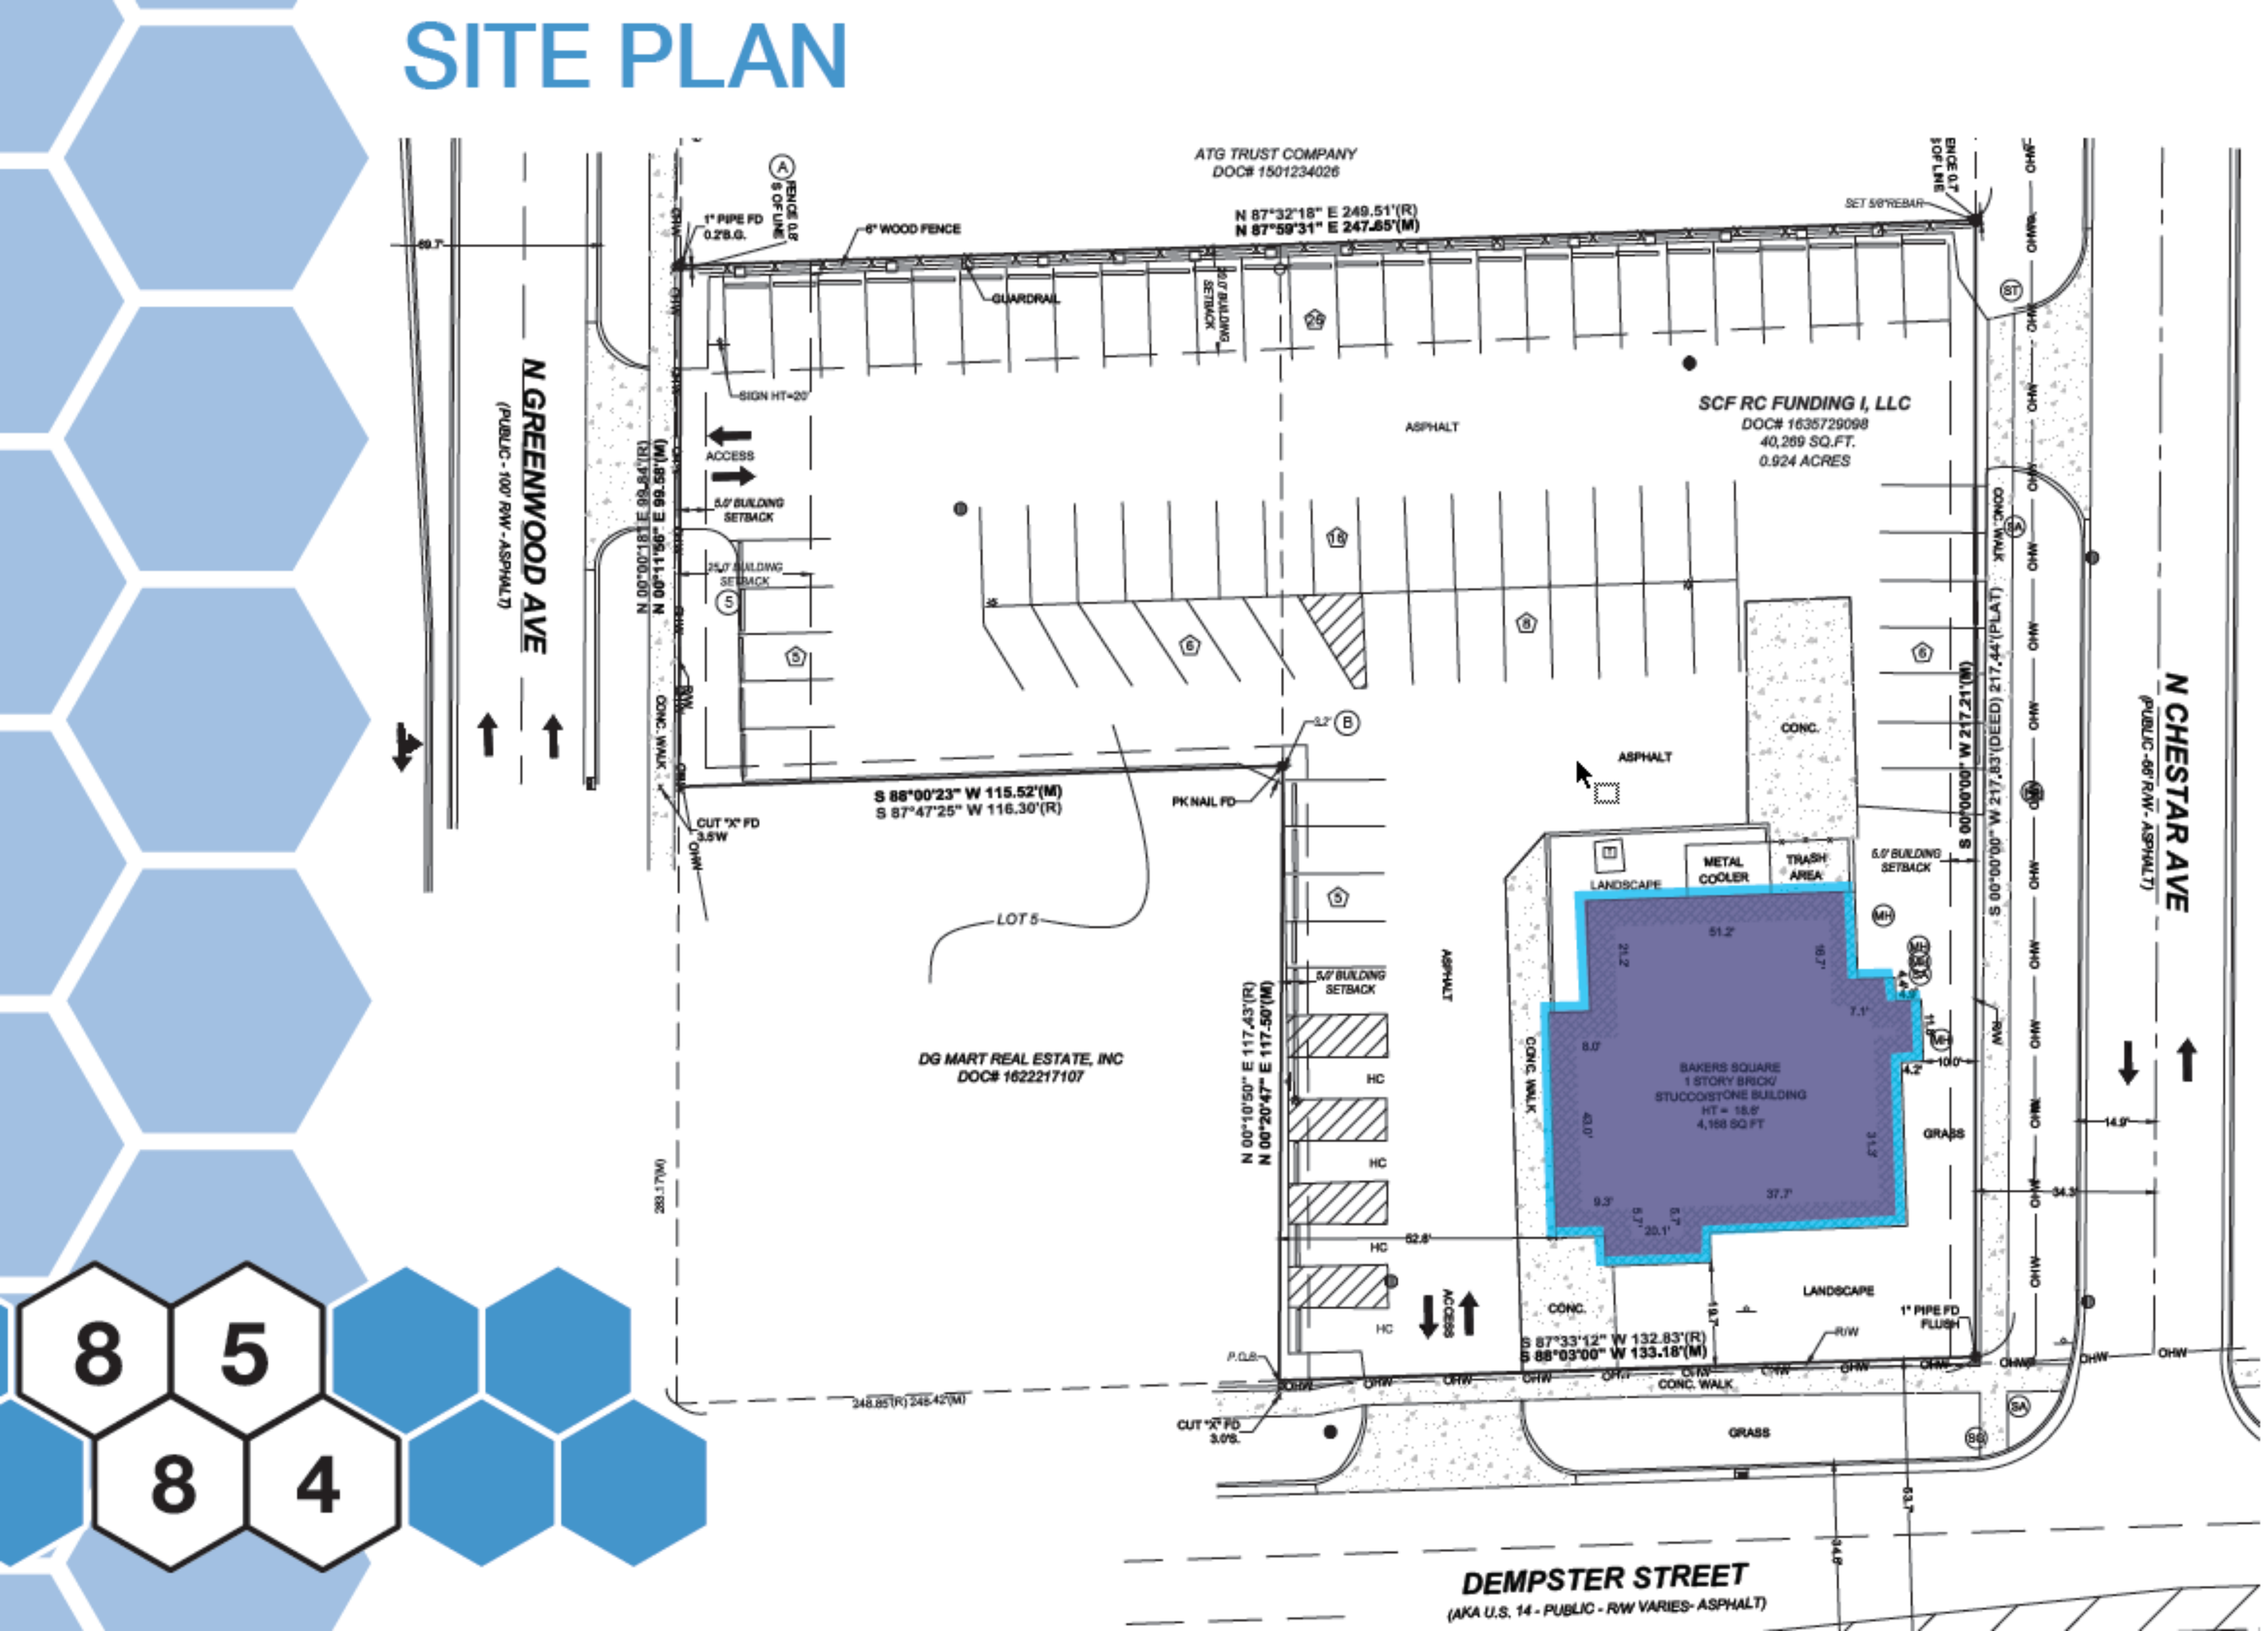 8584 West Dempster: site plan